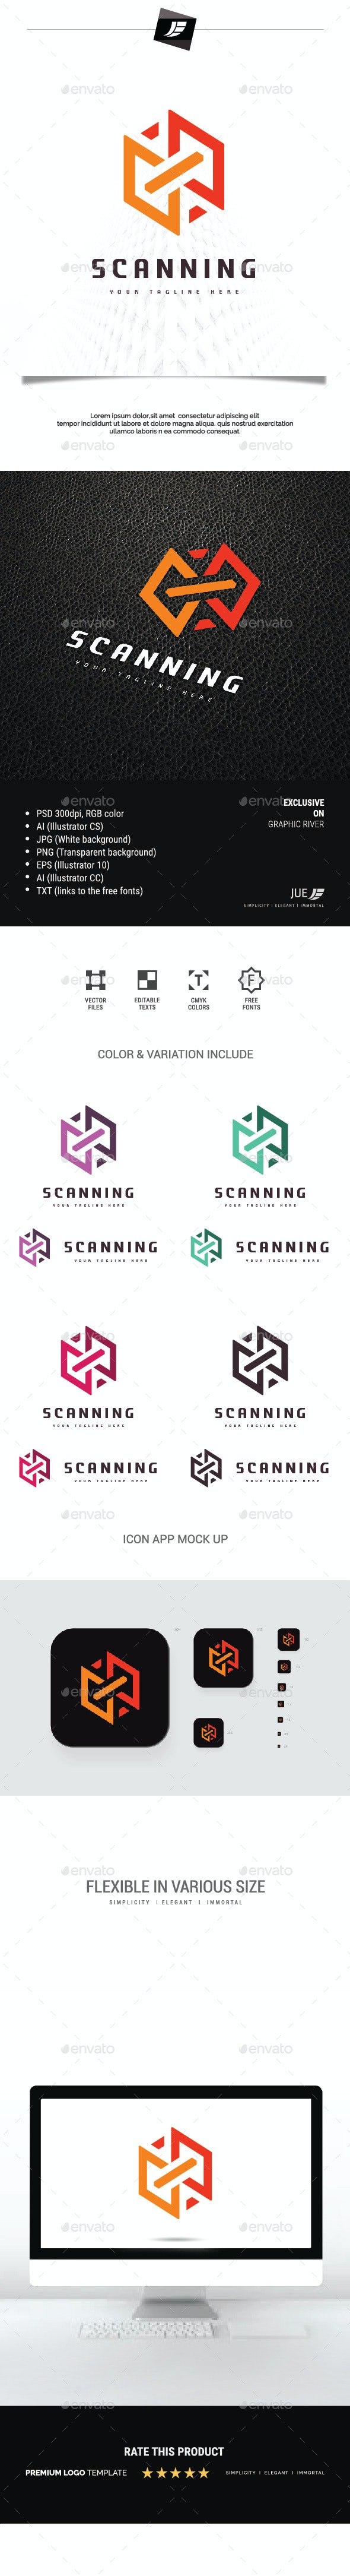 Scanning Cube Logo - 3d Abstract